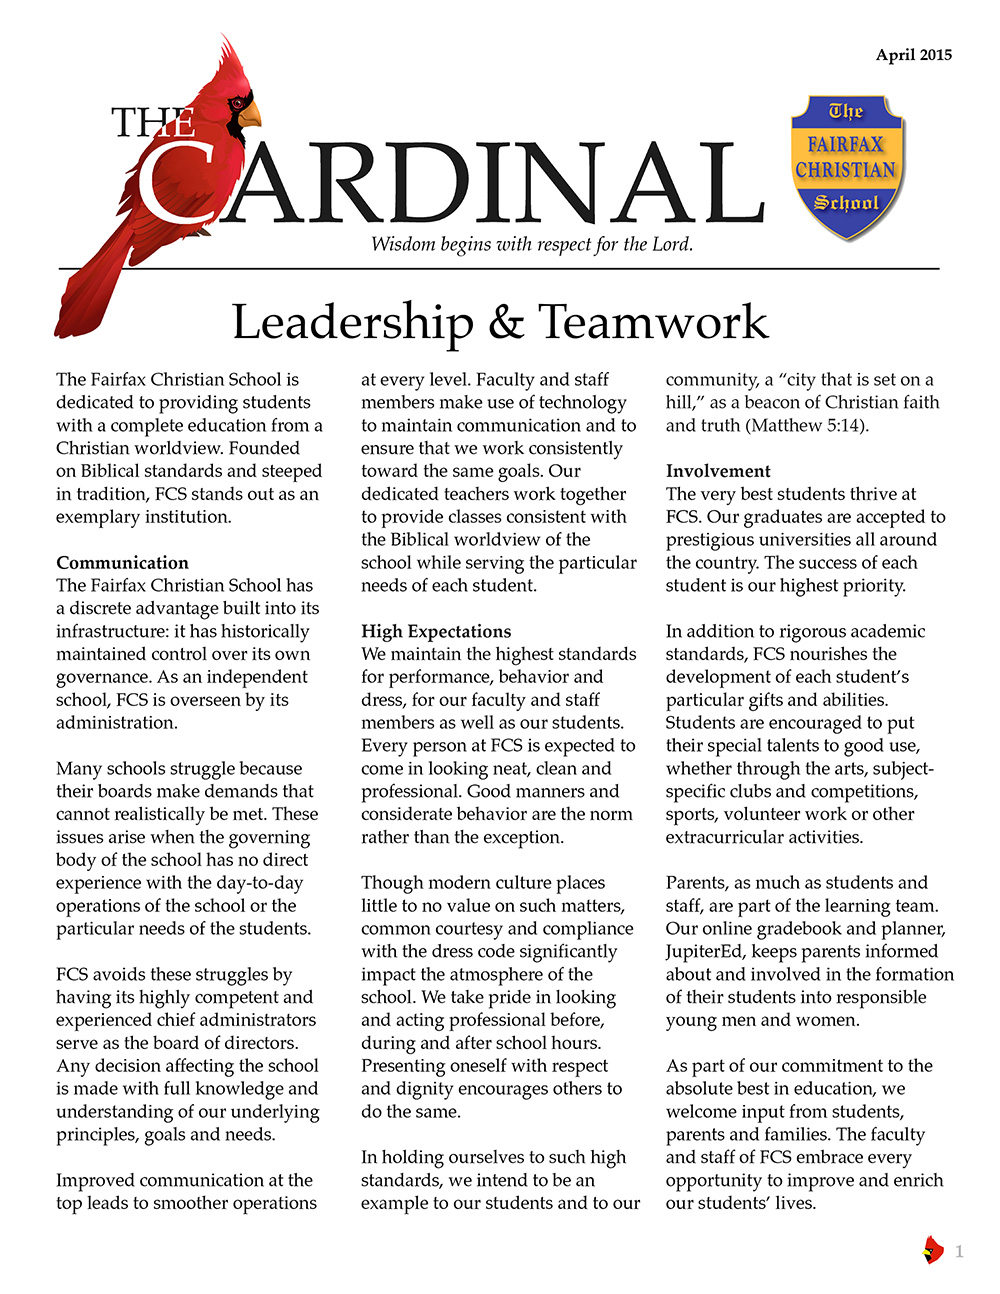 The-Cardinal-Cover-Page-April-2015.jpg